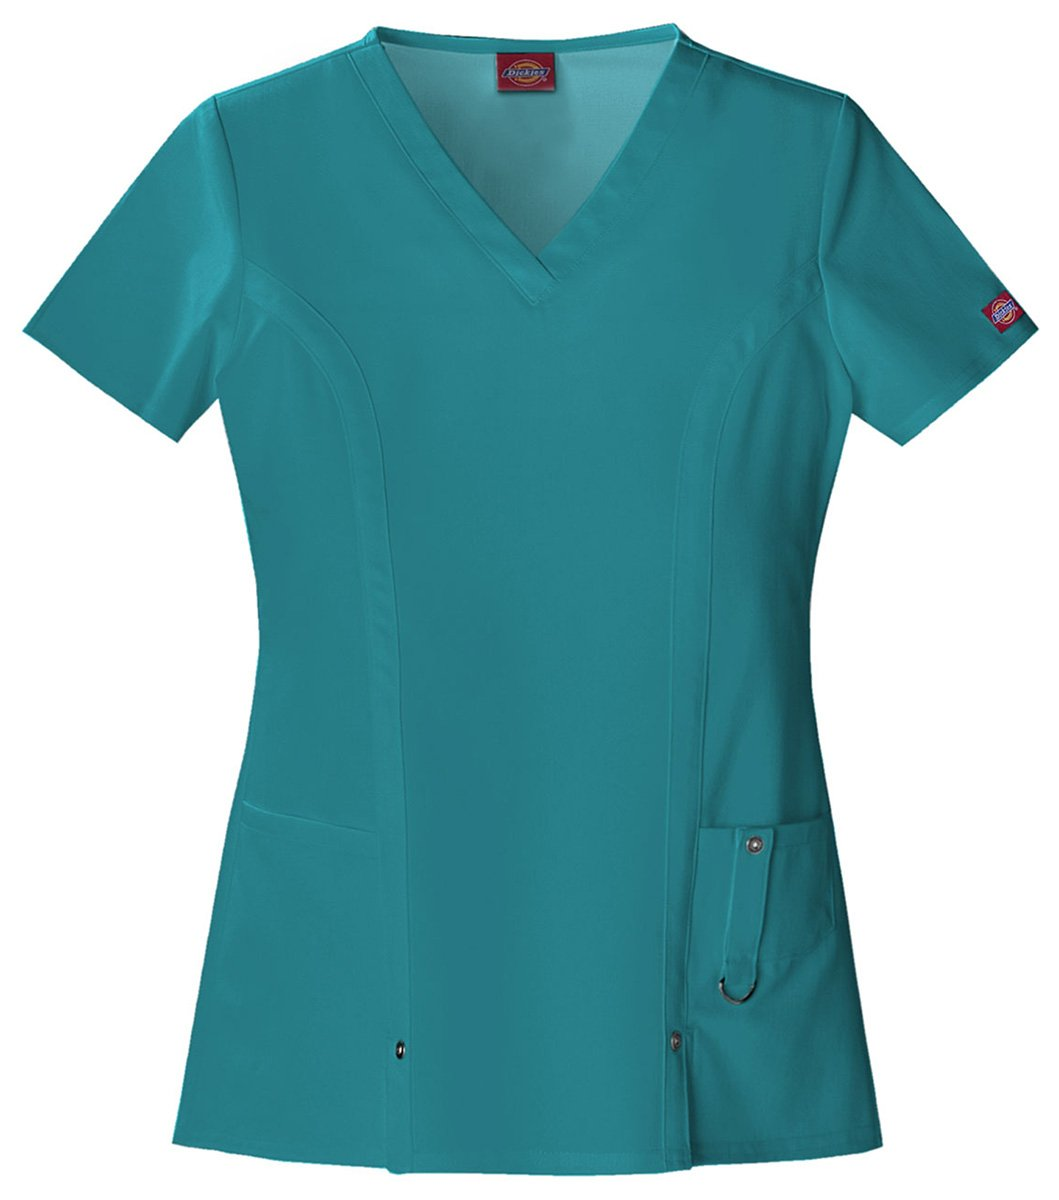 Dickies Women's Classic V-Neck Top_Teal_XXX-Large,82851